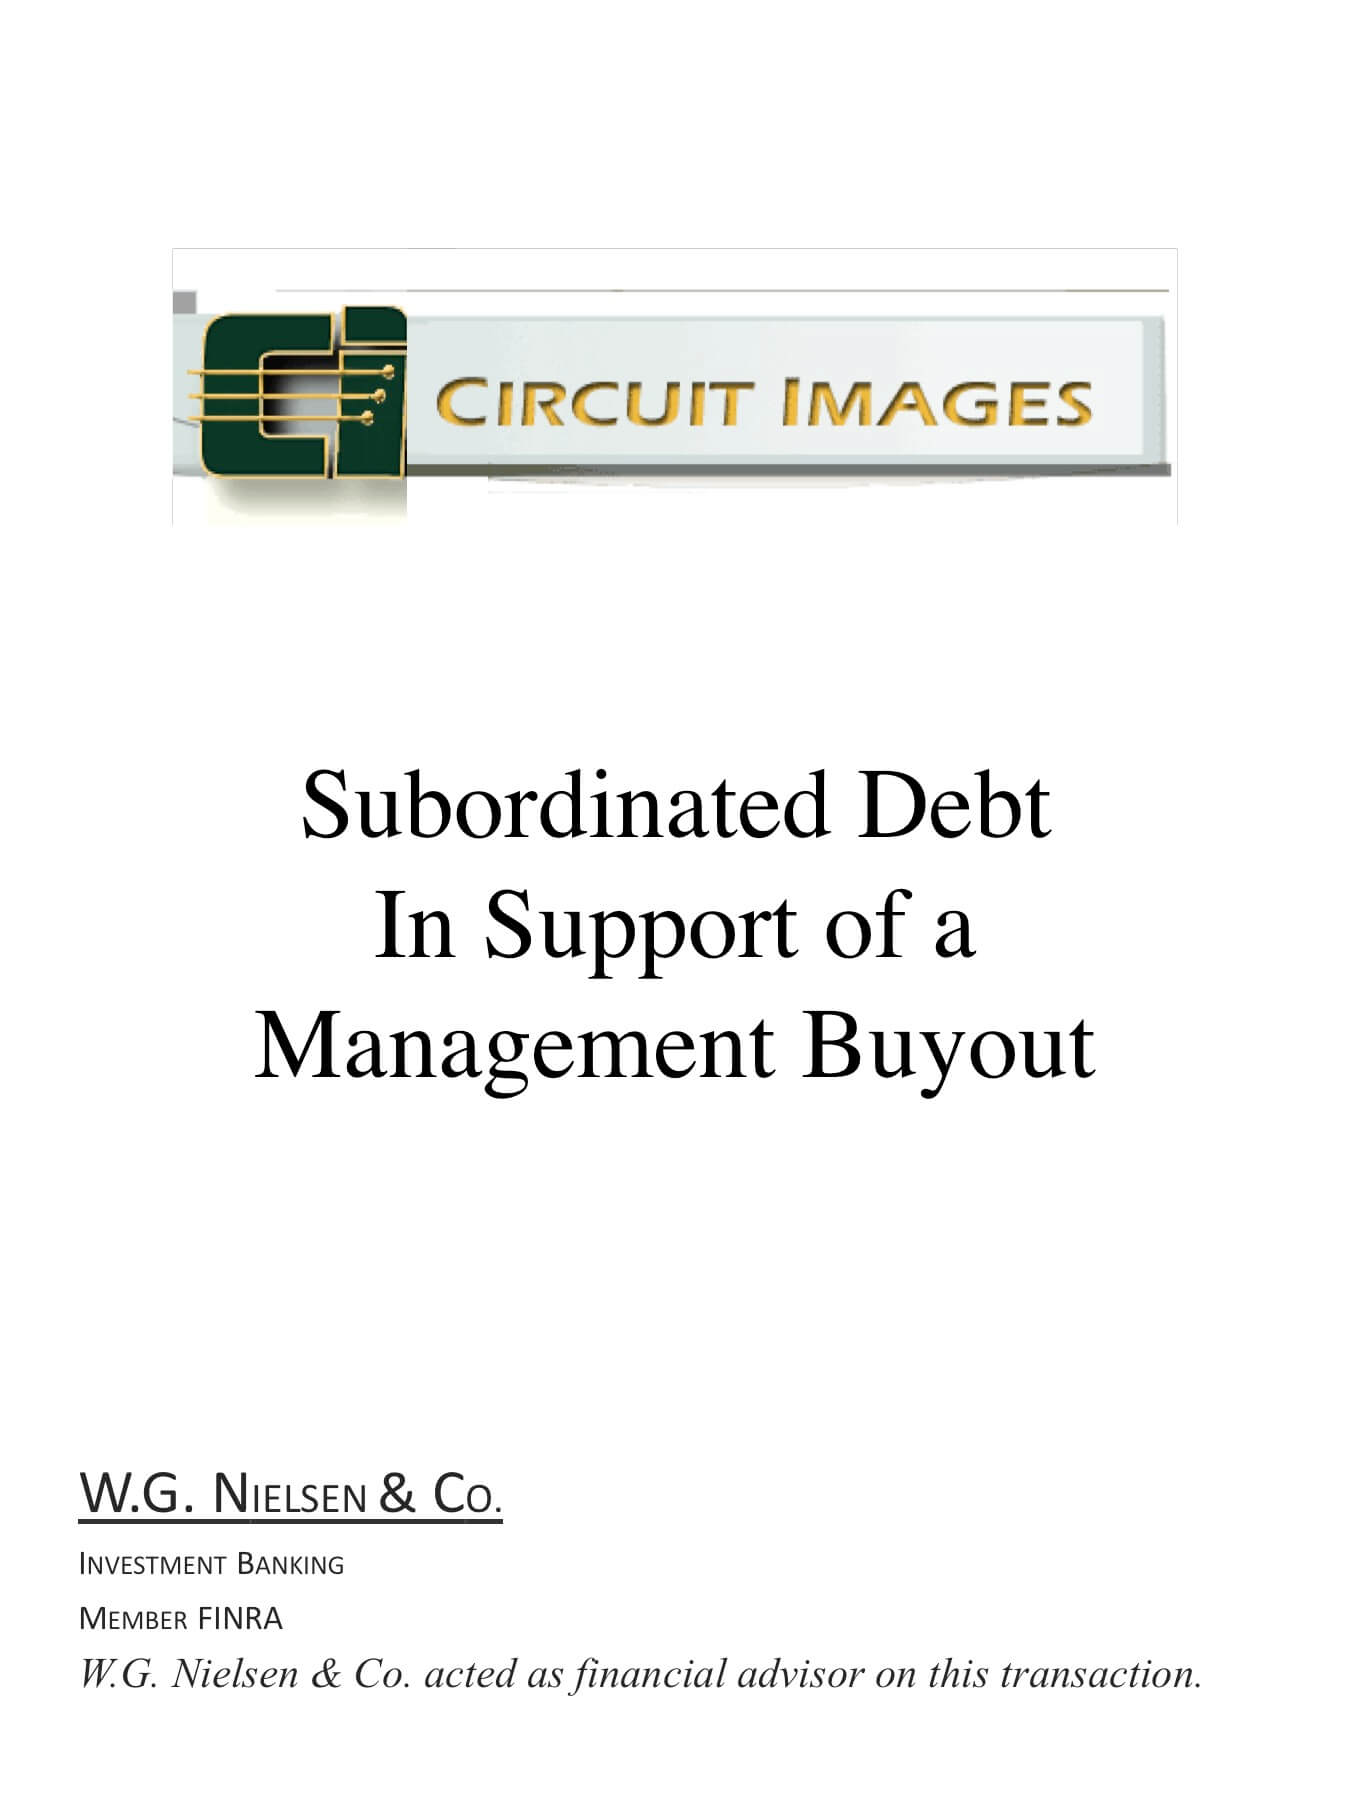 circuit images investment banking transaction